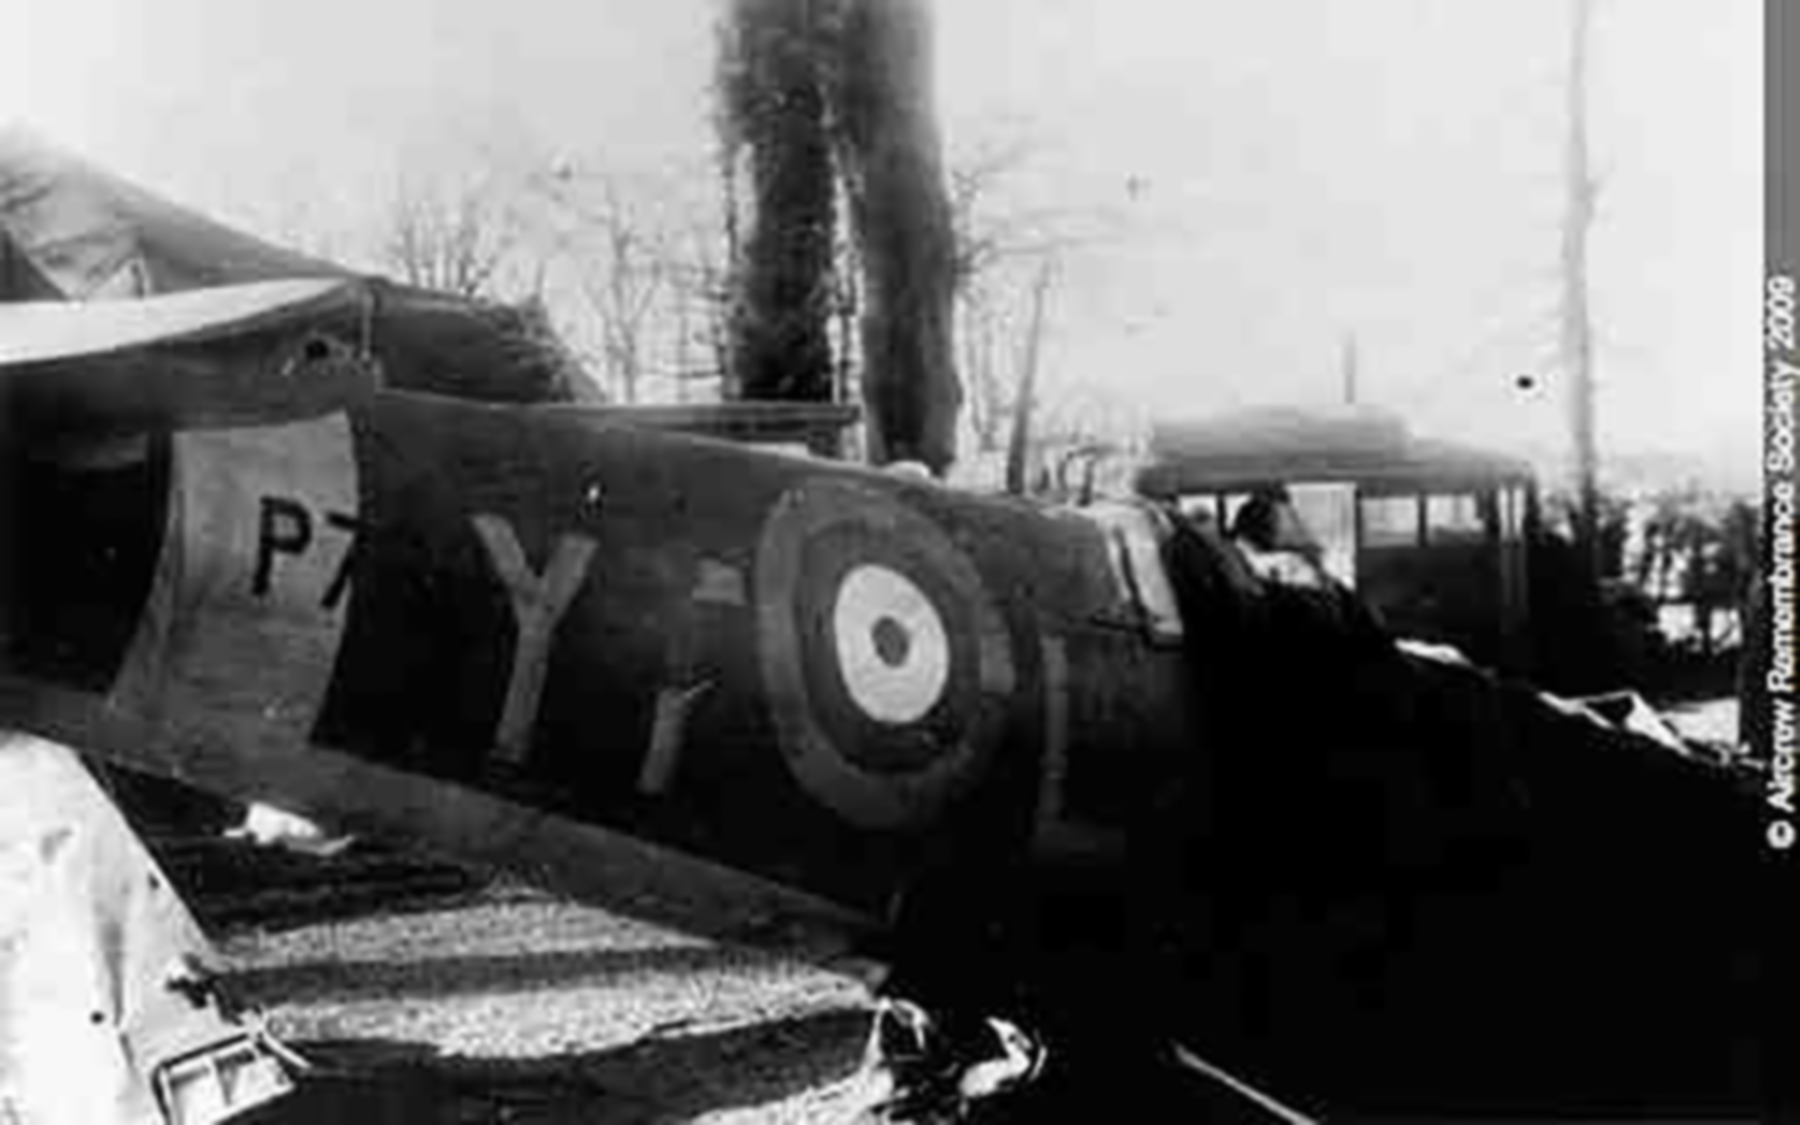 Aircraft wreck of P7665 YTL seen here lying in a French scrapyard 01